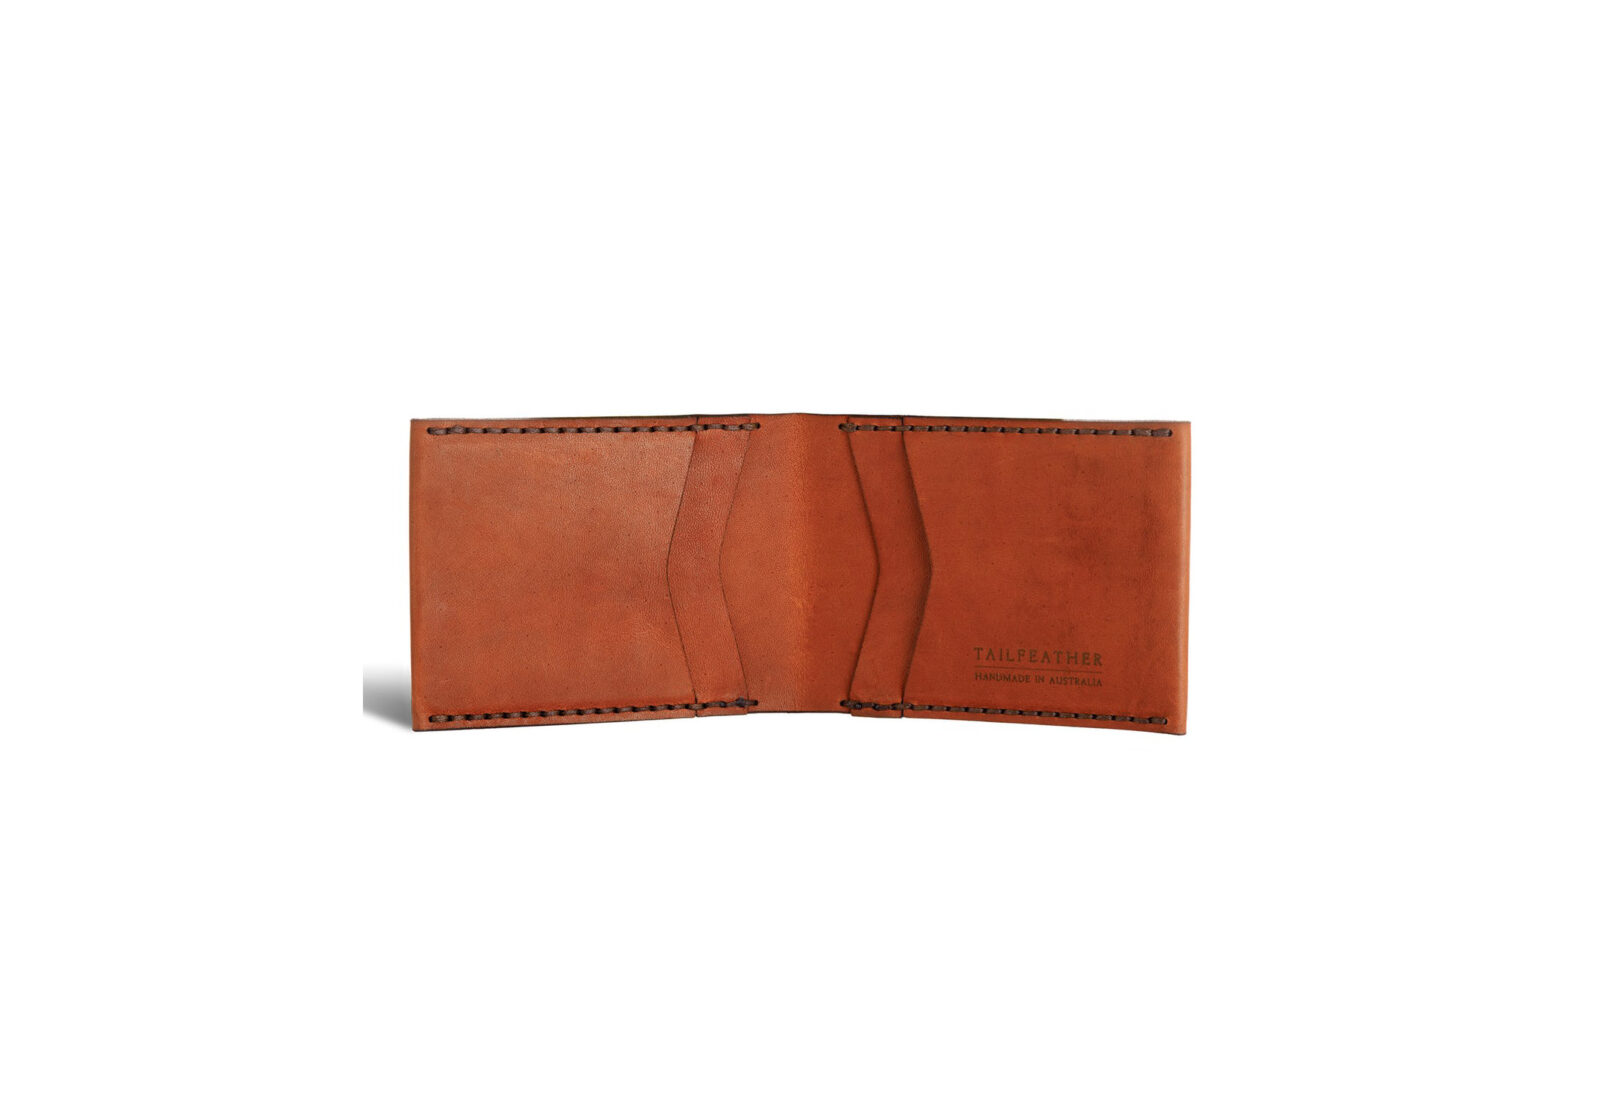 Tailfeather Handcrafted Kangaroo Leather Wallet 1 1600x1111 - Tailfeather Goods: Handcrafted Kangaroo Leather Wallet